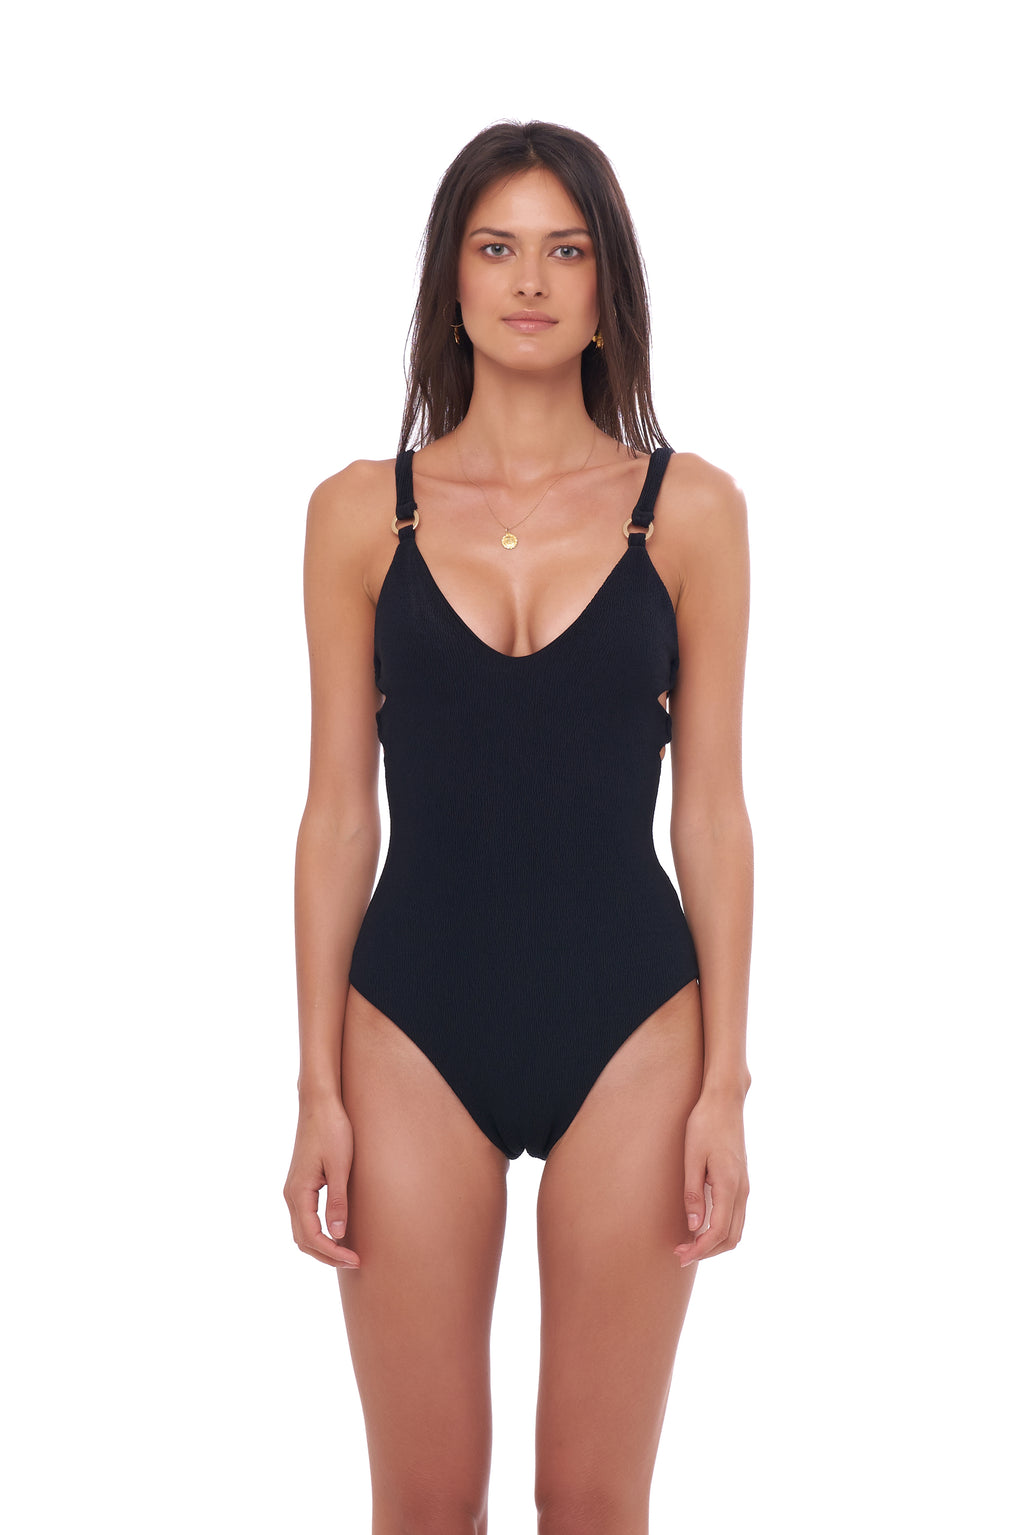 Storm Swimwear - Sicily - One Piece Swimsuit in Seascape Black Textured